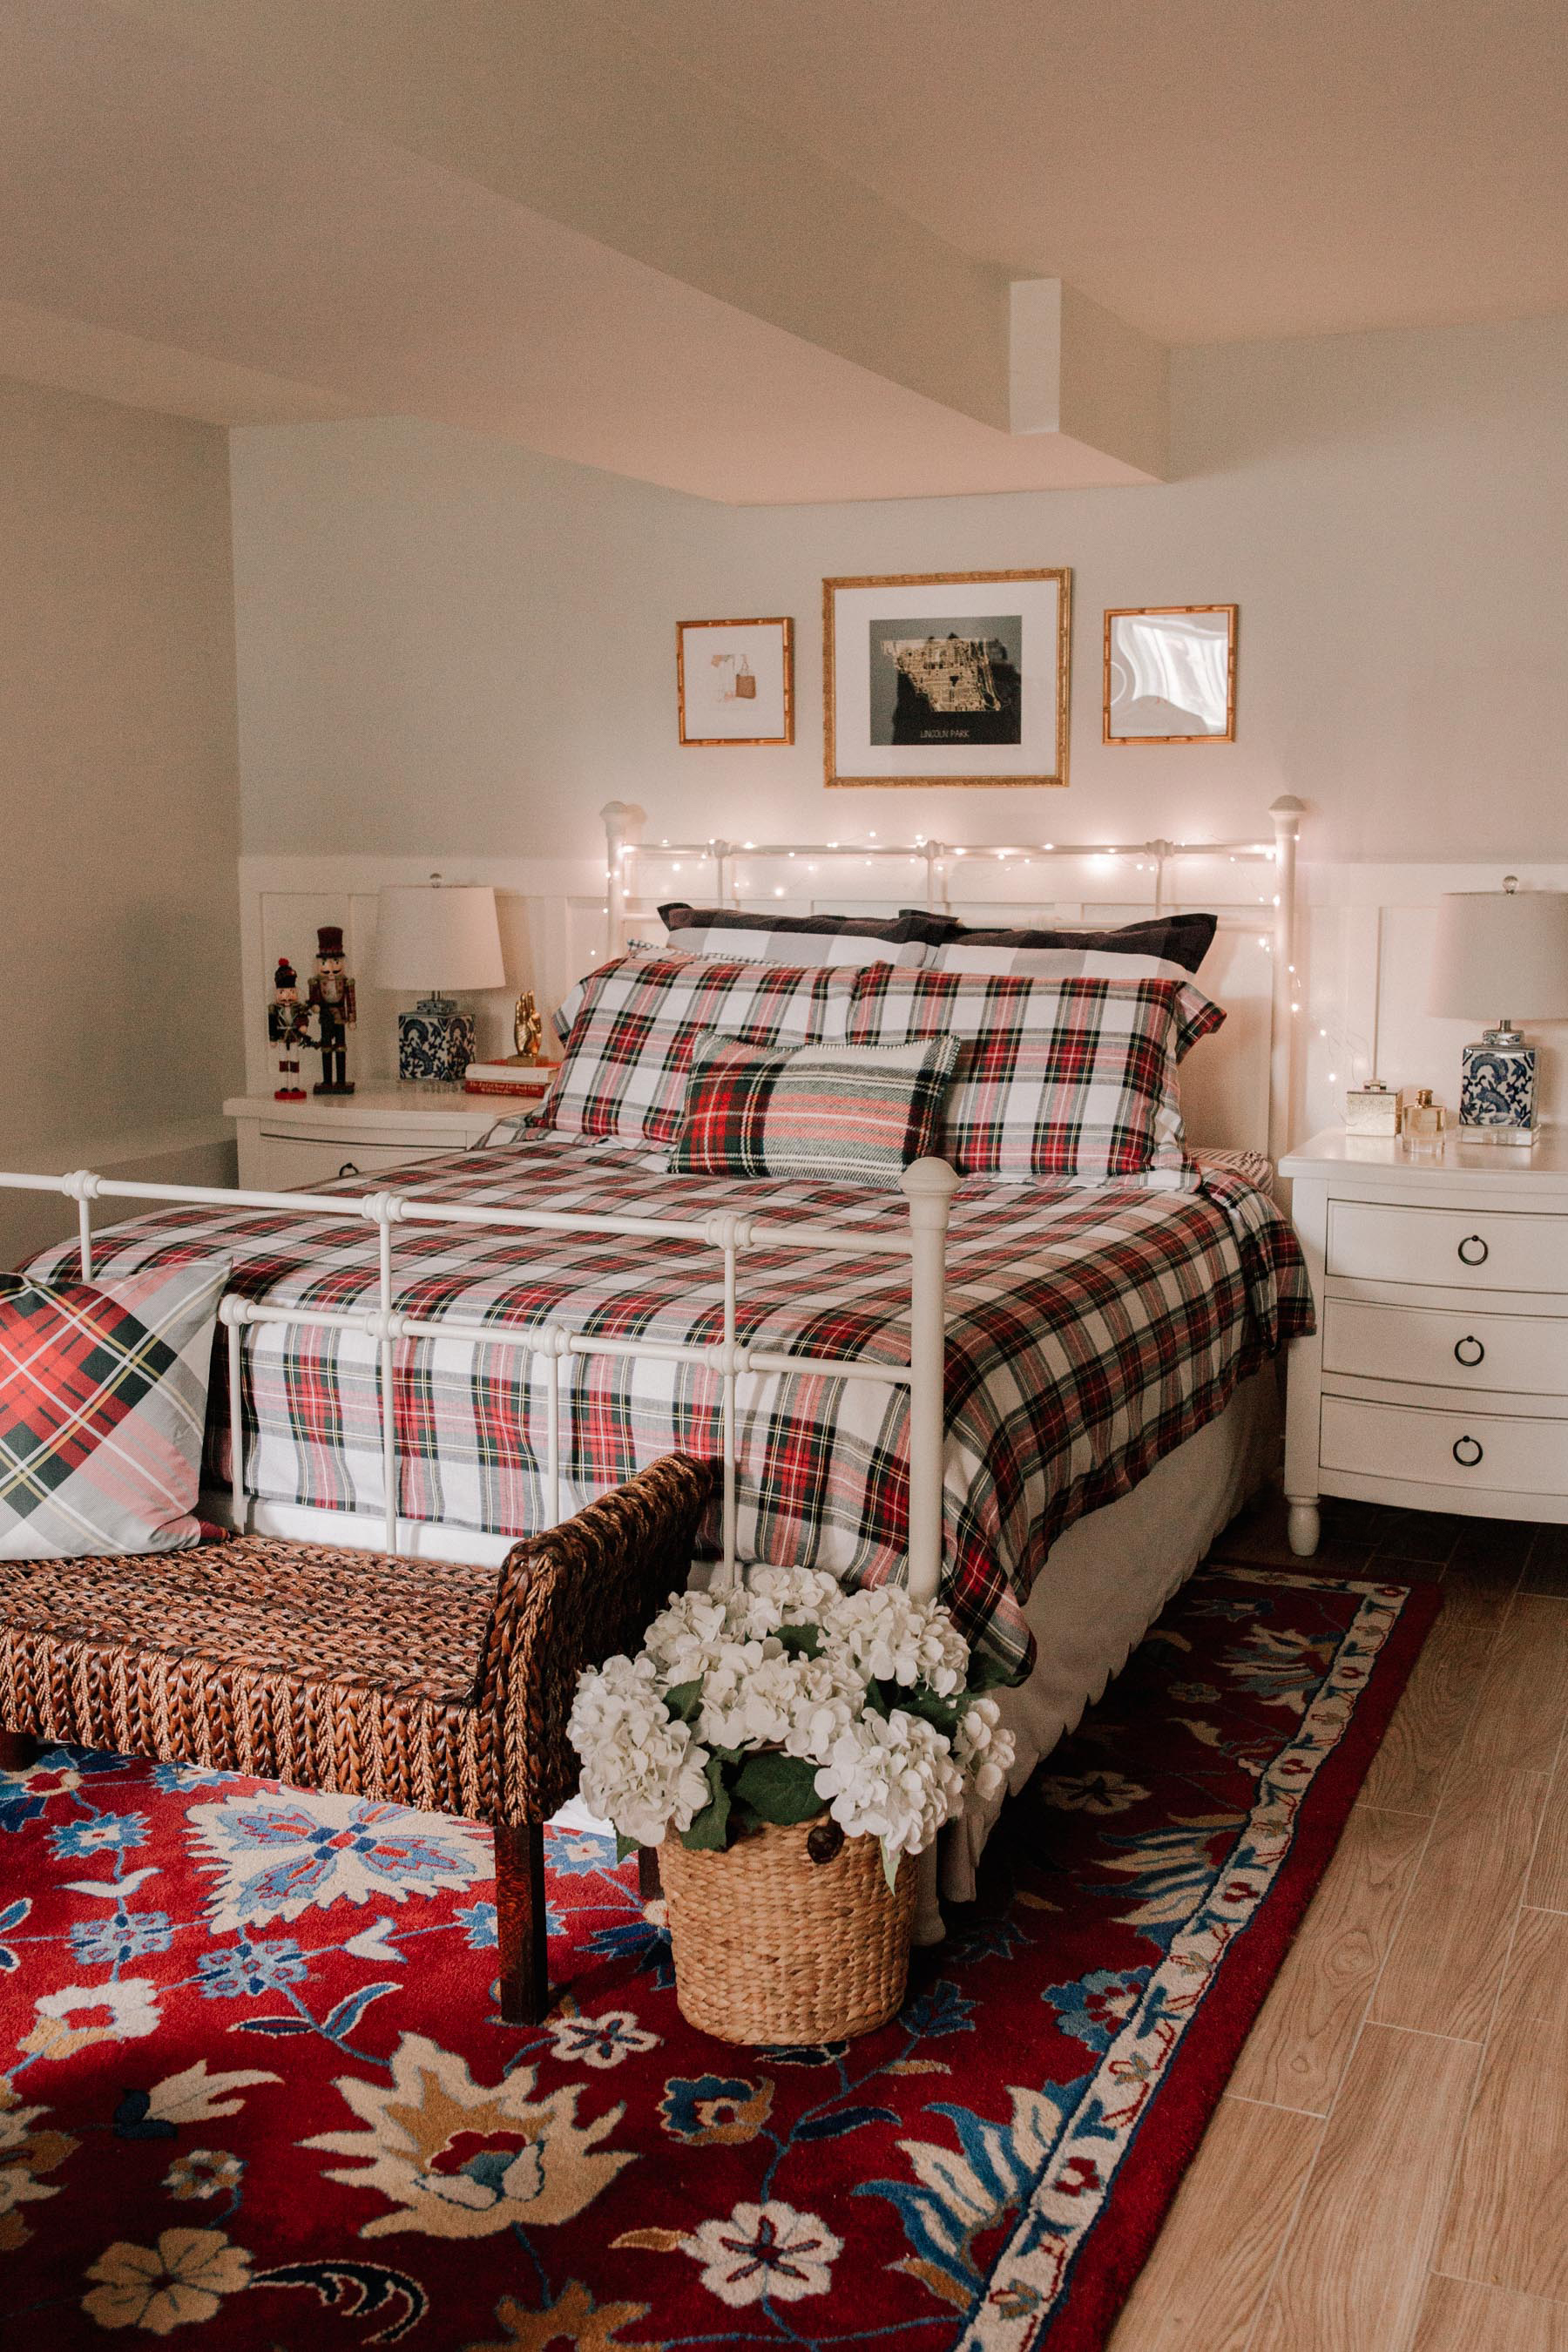 plaid christmas decor bedding